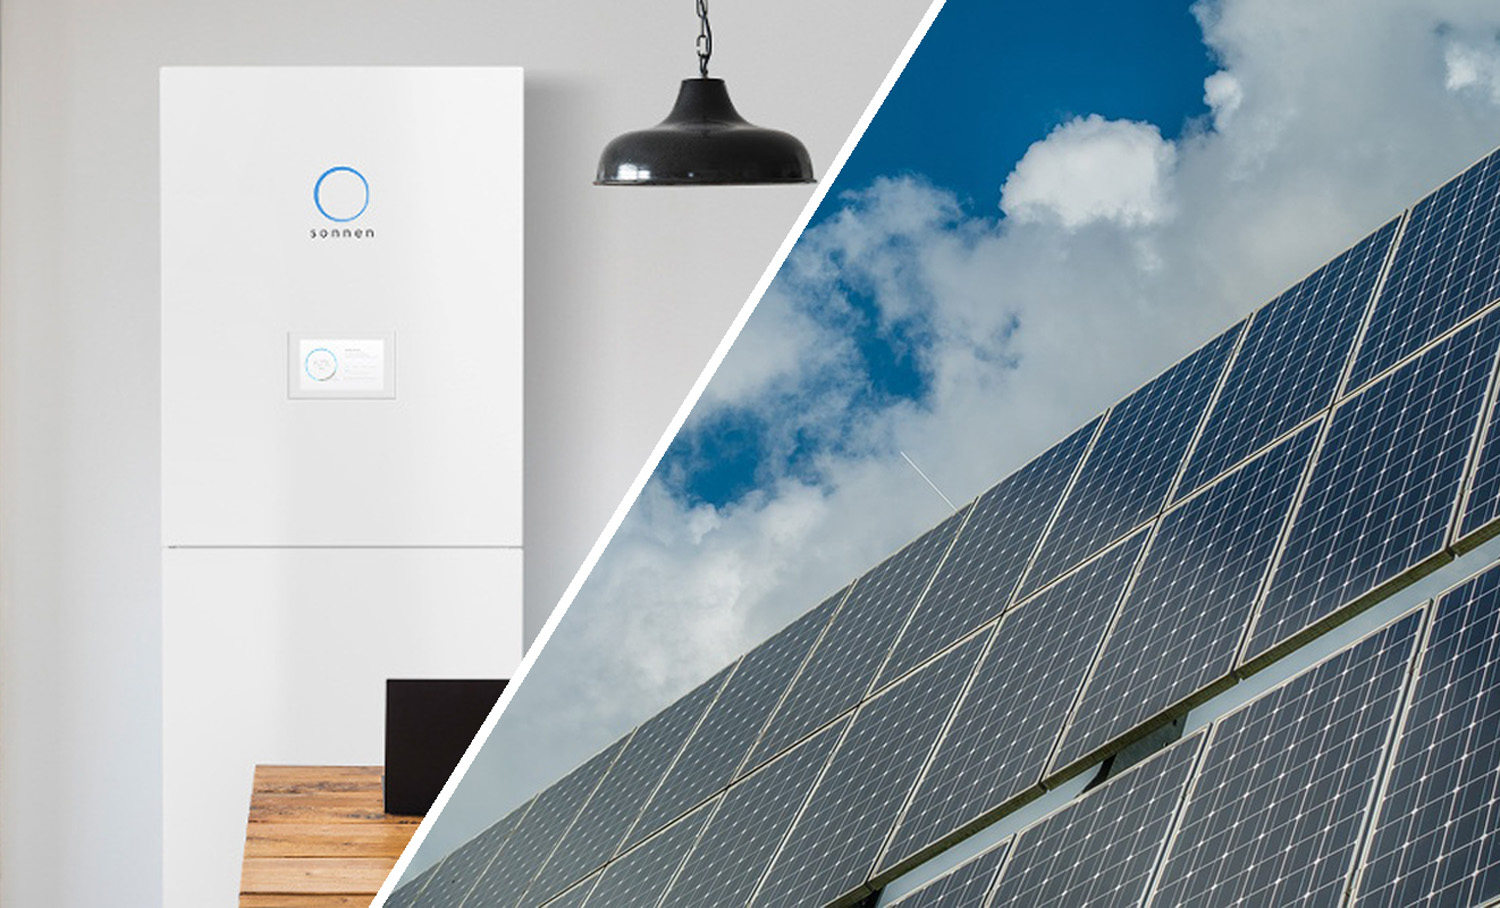 Sonnen intelligent storage systems for photovoltaic systems